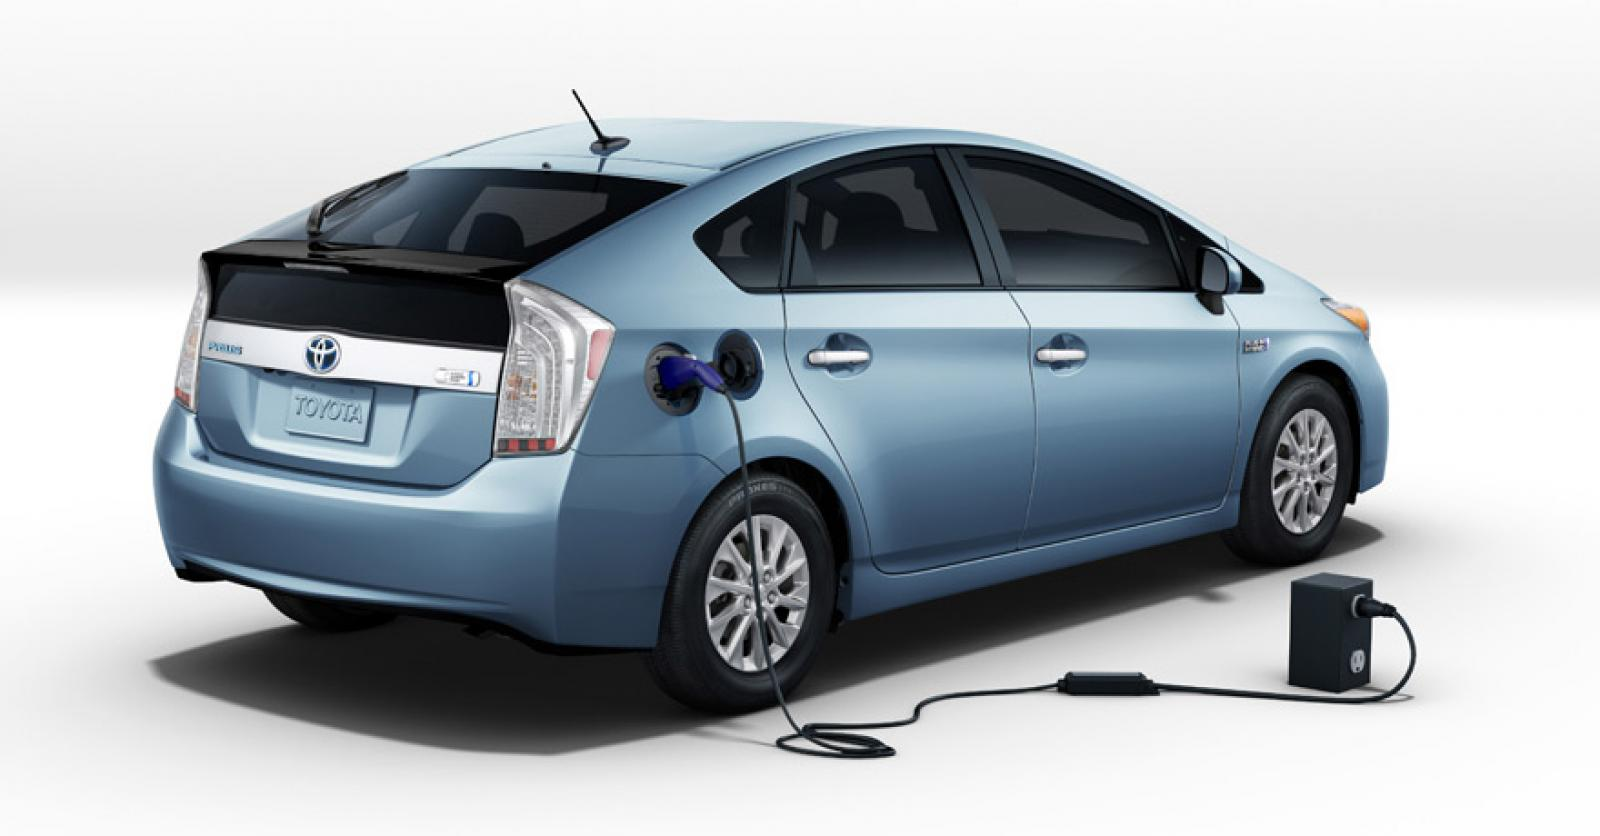 2012 toyota prius plug in information and photos zombiedrive. Black Bedroom Furniture Sets. Home Design Ideas